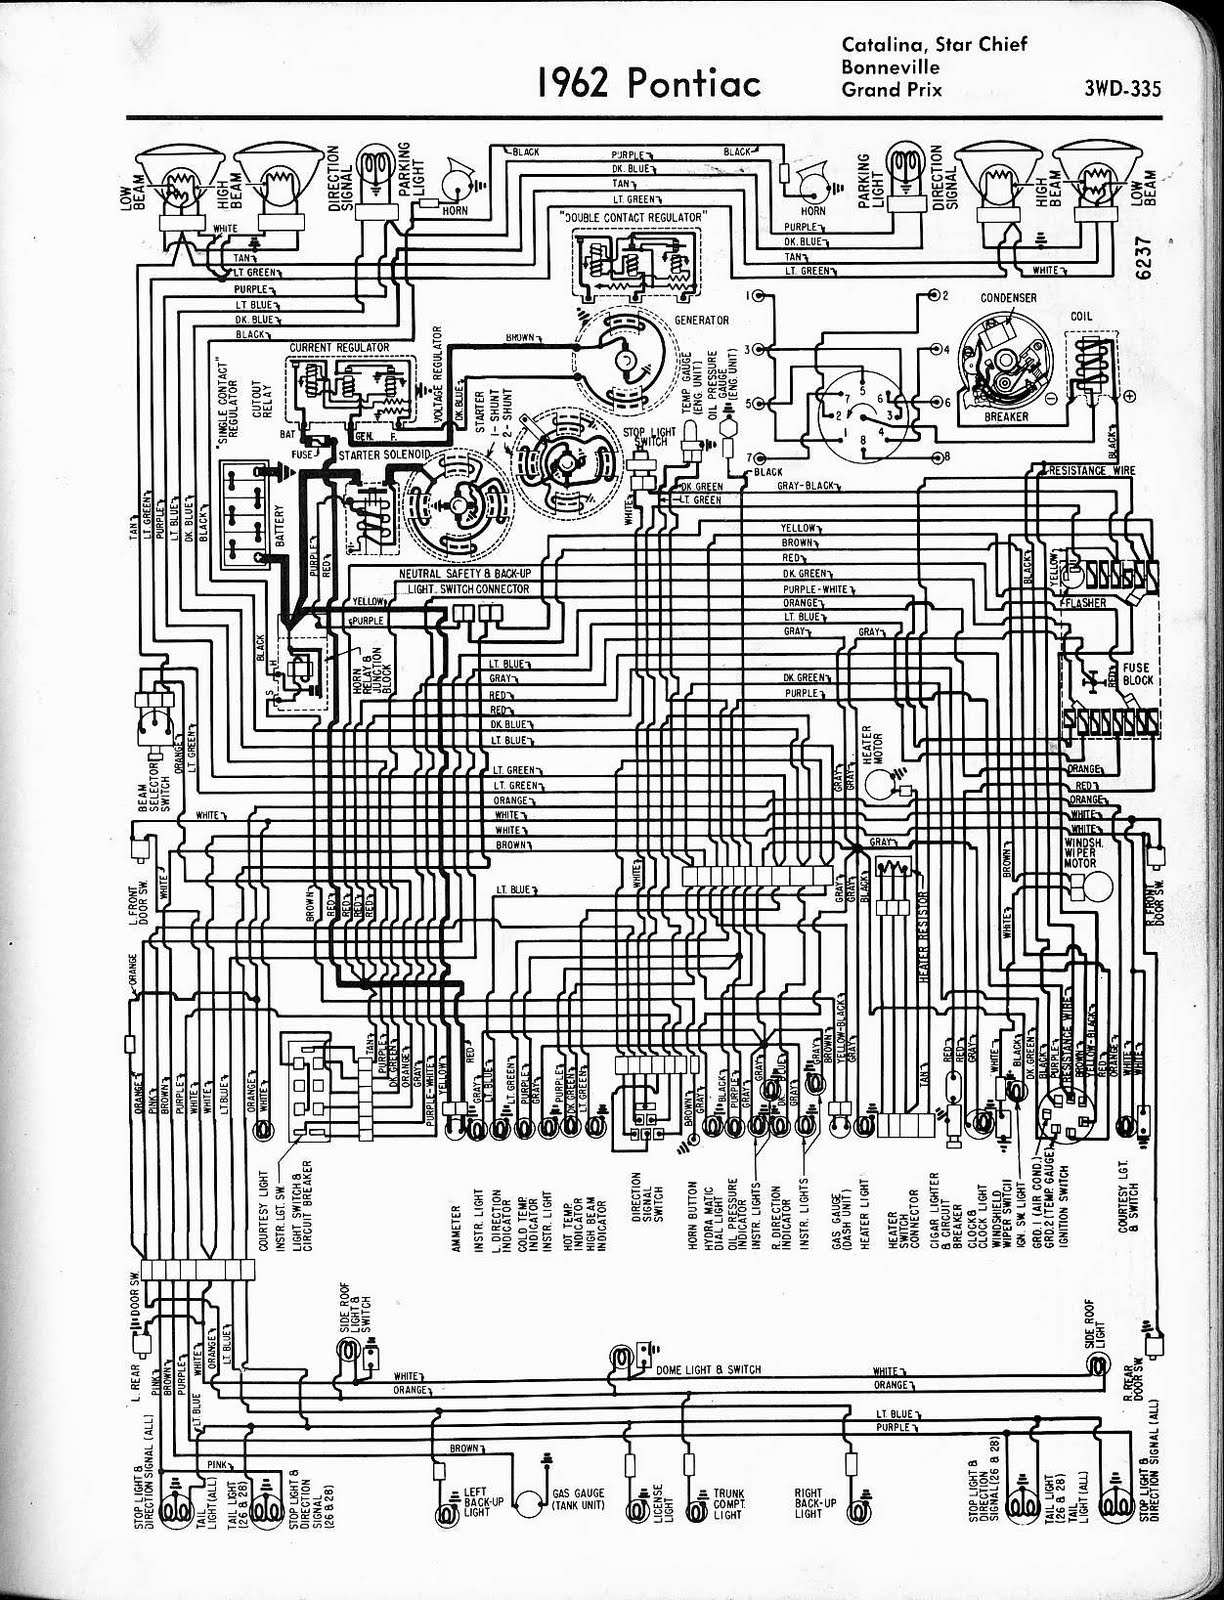 1960 Buick Wiring Diagram Great Design Of 2000 Regal Ls Fuse Box Free Auto 1962 Pontiac Catalina Star 2004 Lesabre